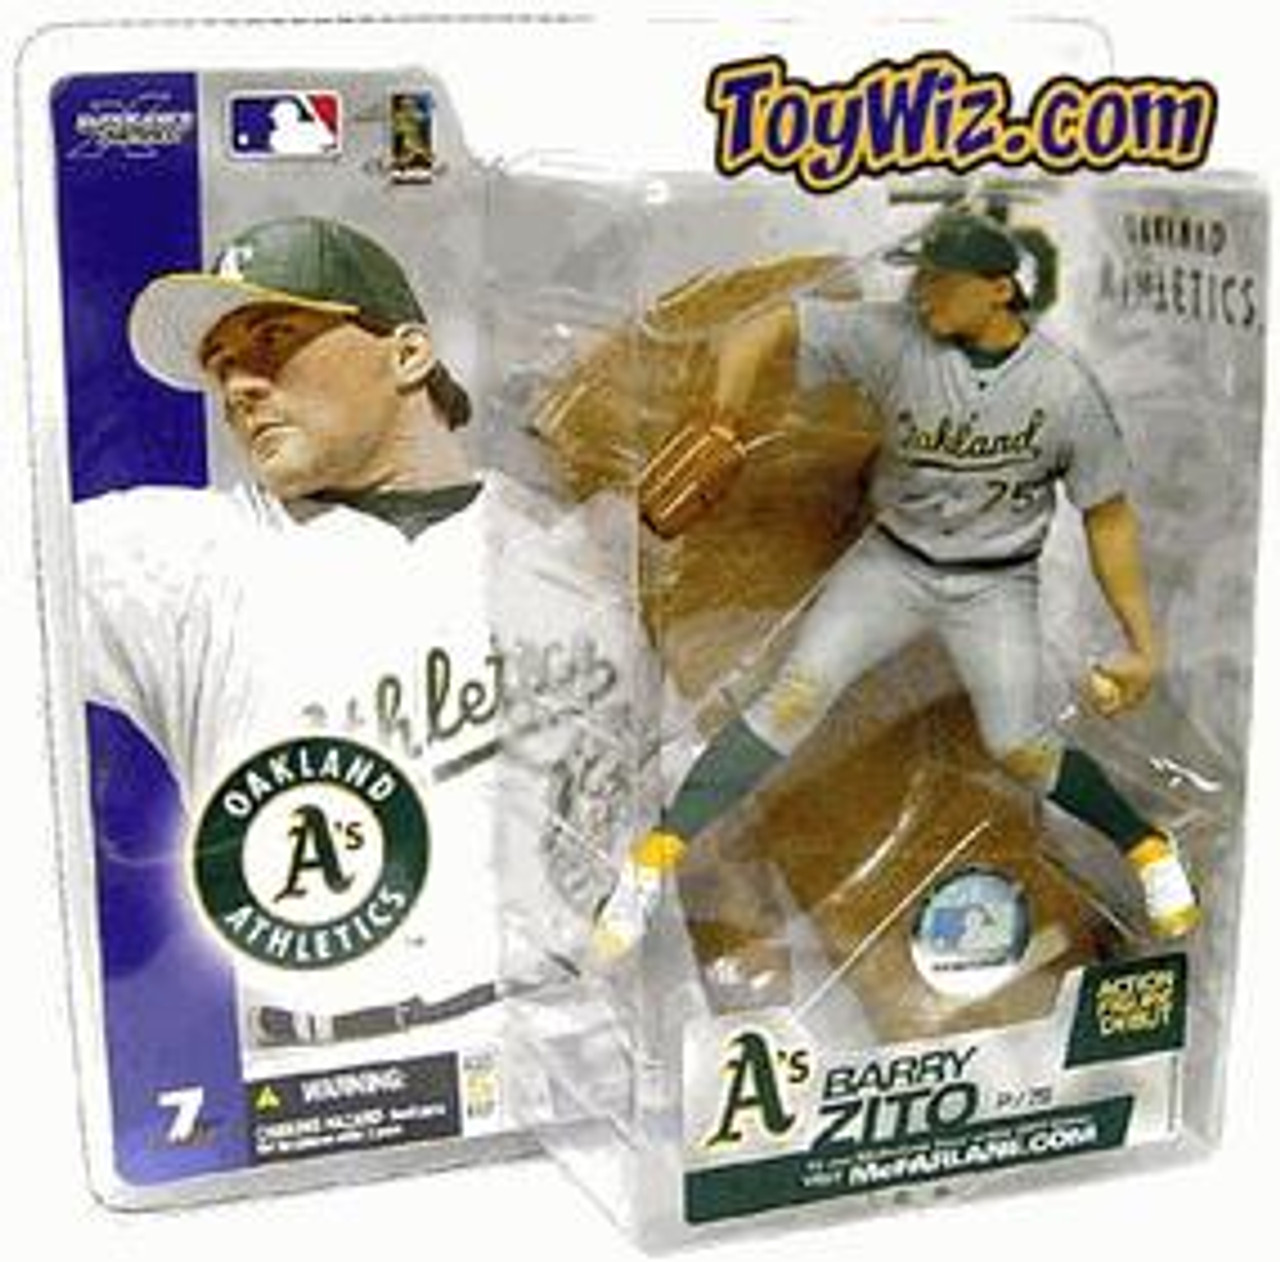 McFarlane Toys MLB Oakland A's Sports Picks Series 7 Barry Zito Action Figure [Gray Jersey Variant]